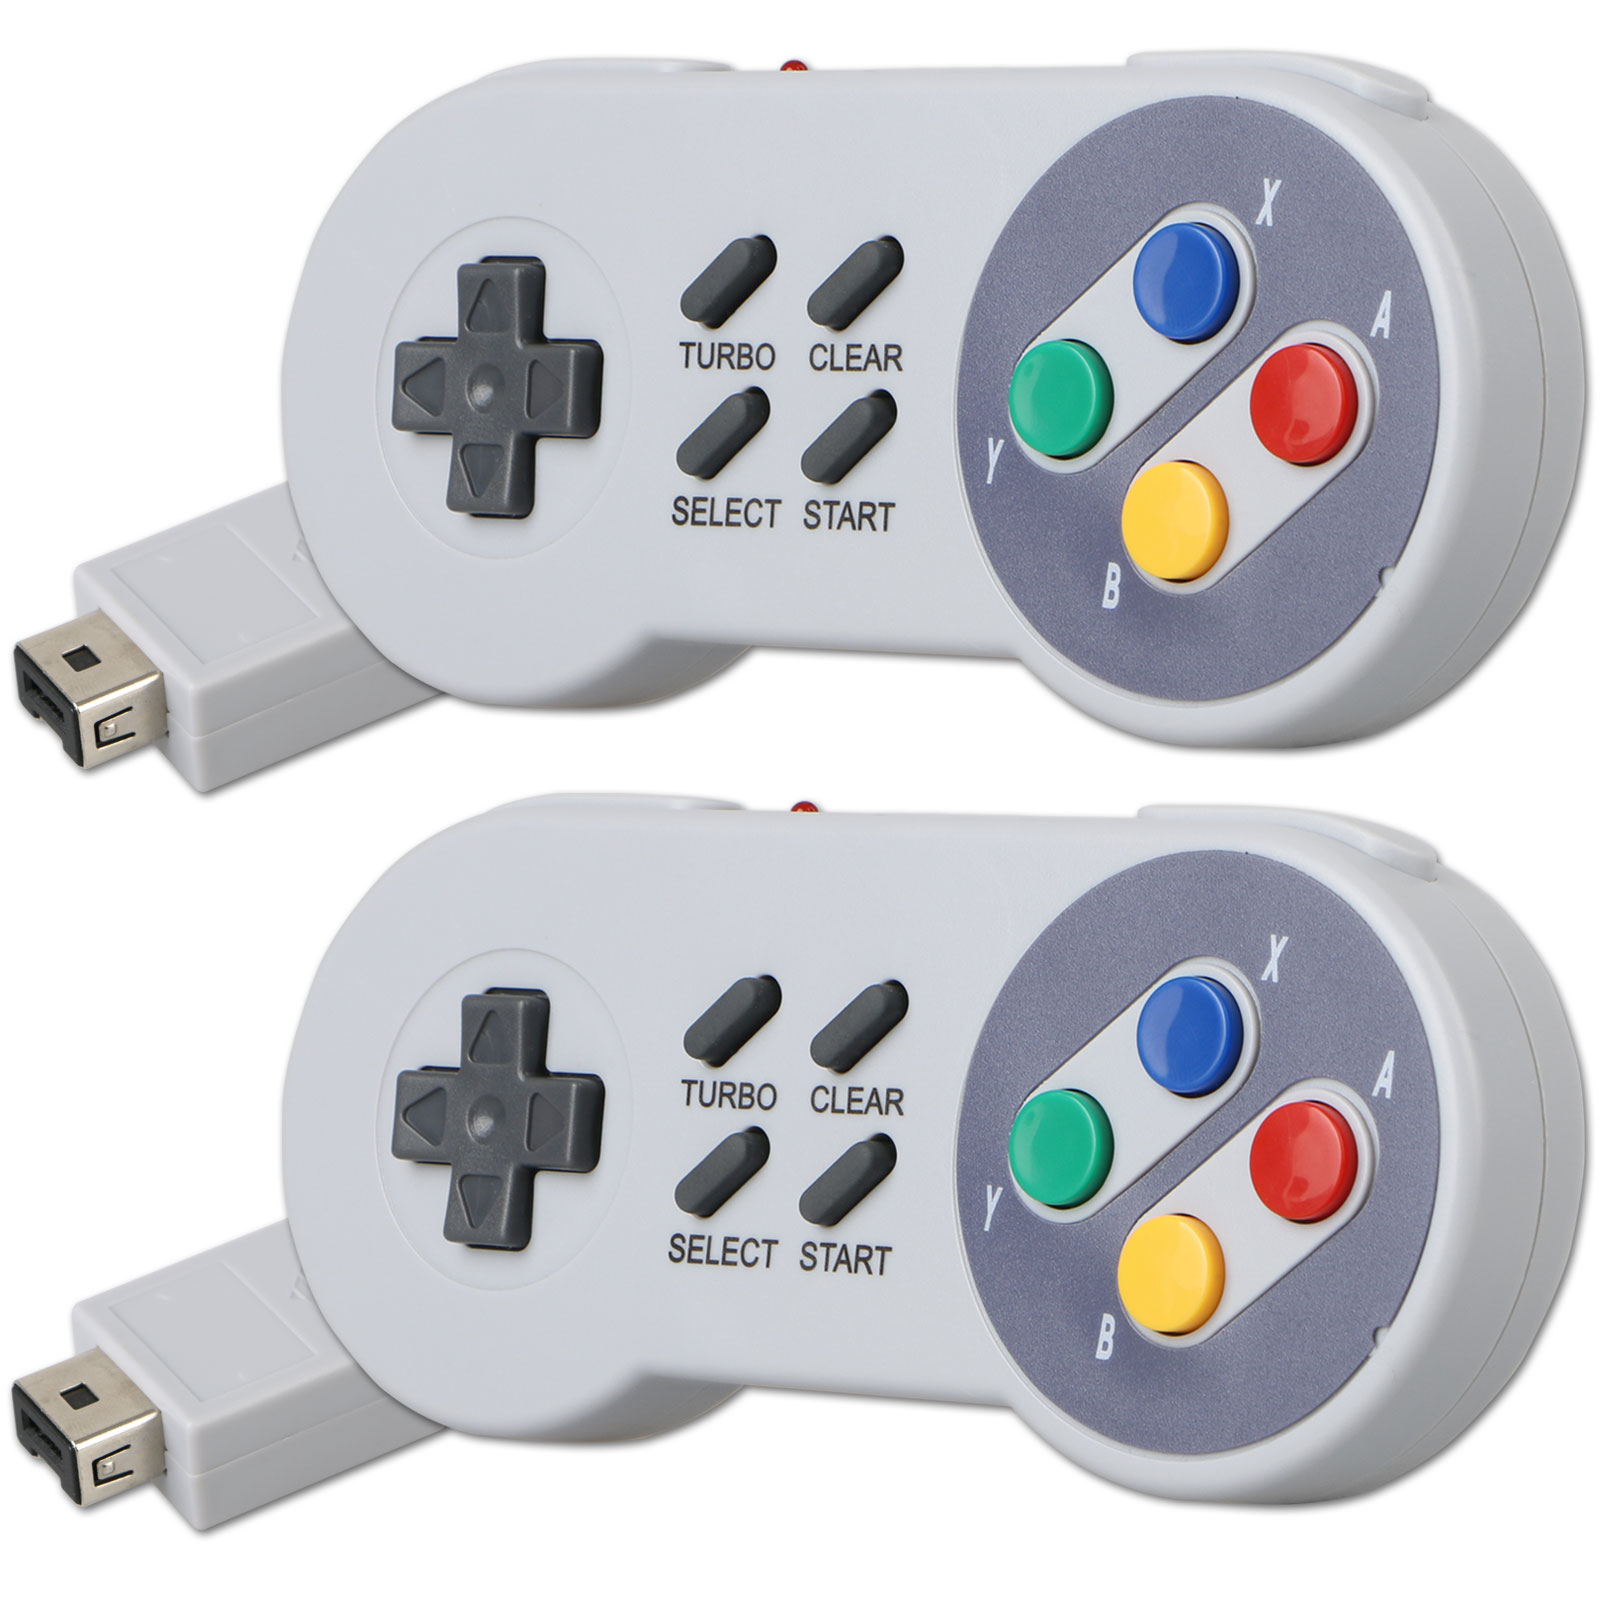 2-pack 2.4GHz Wireless Gamepad Controller for Super Nintendo SNES Classic Mini Edition Console